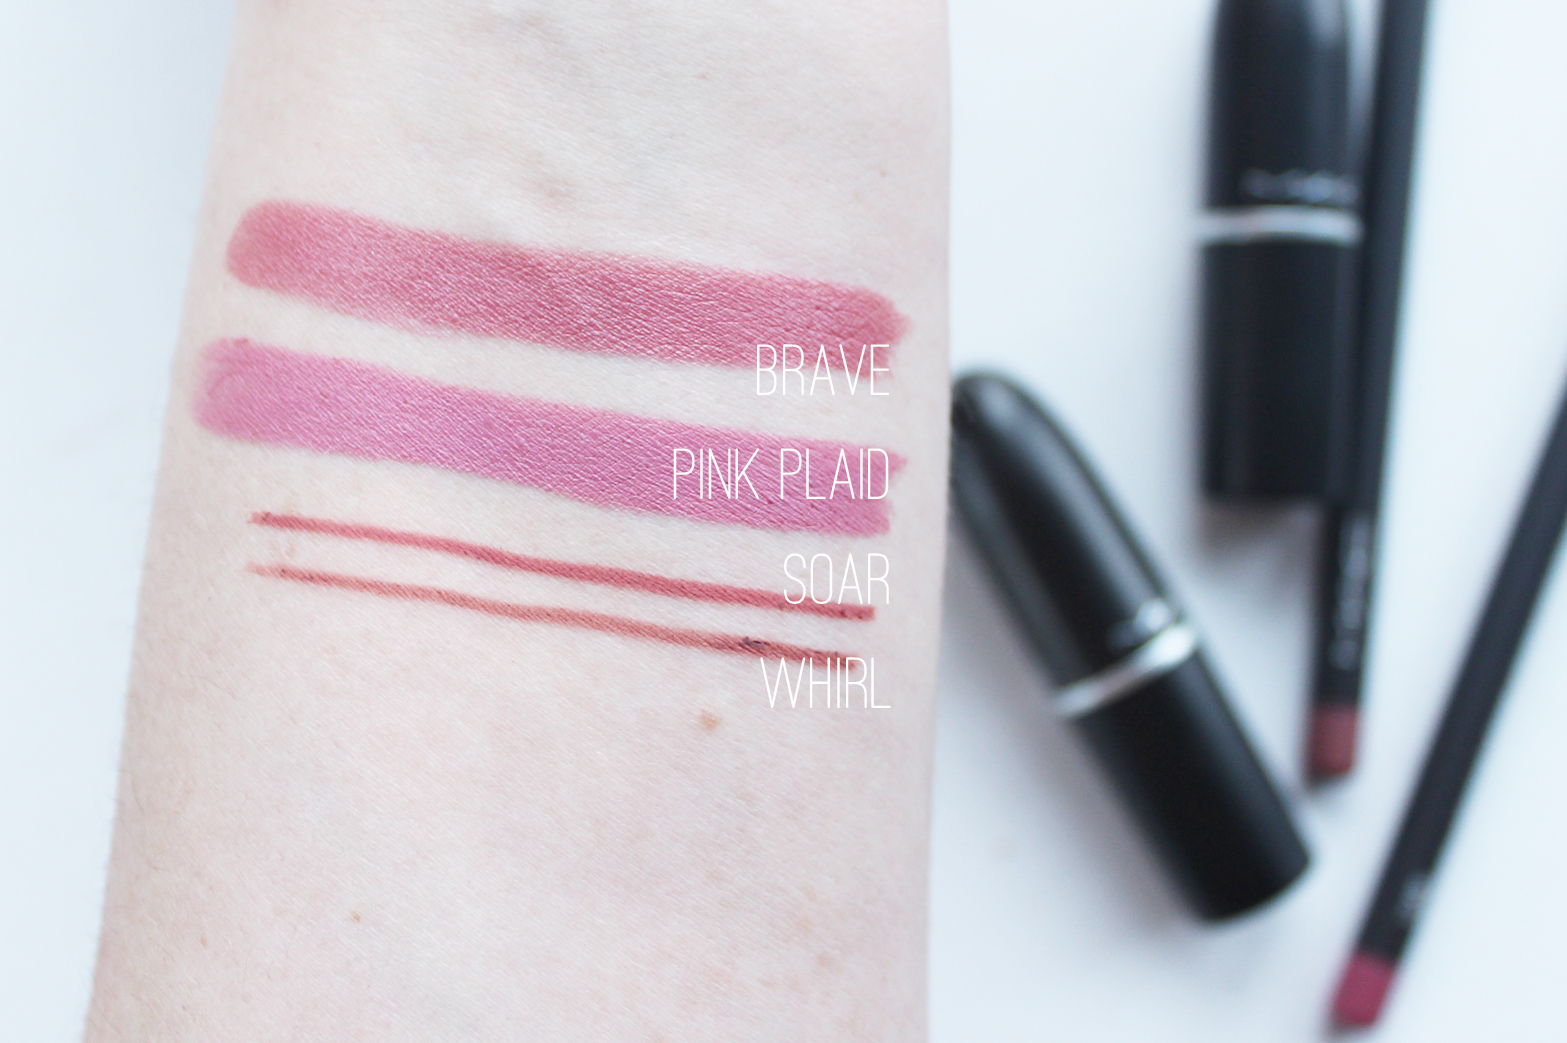 MAC   Haul feat. Philip Treacy + Wash & Dry Collection - Review + Swatches - CassandraMyee